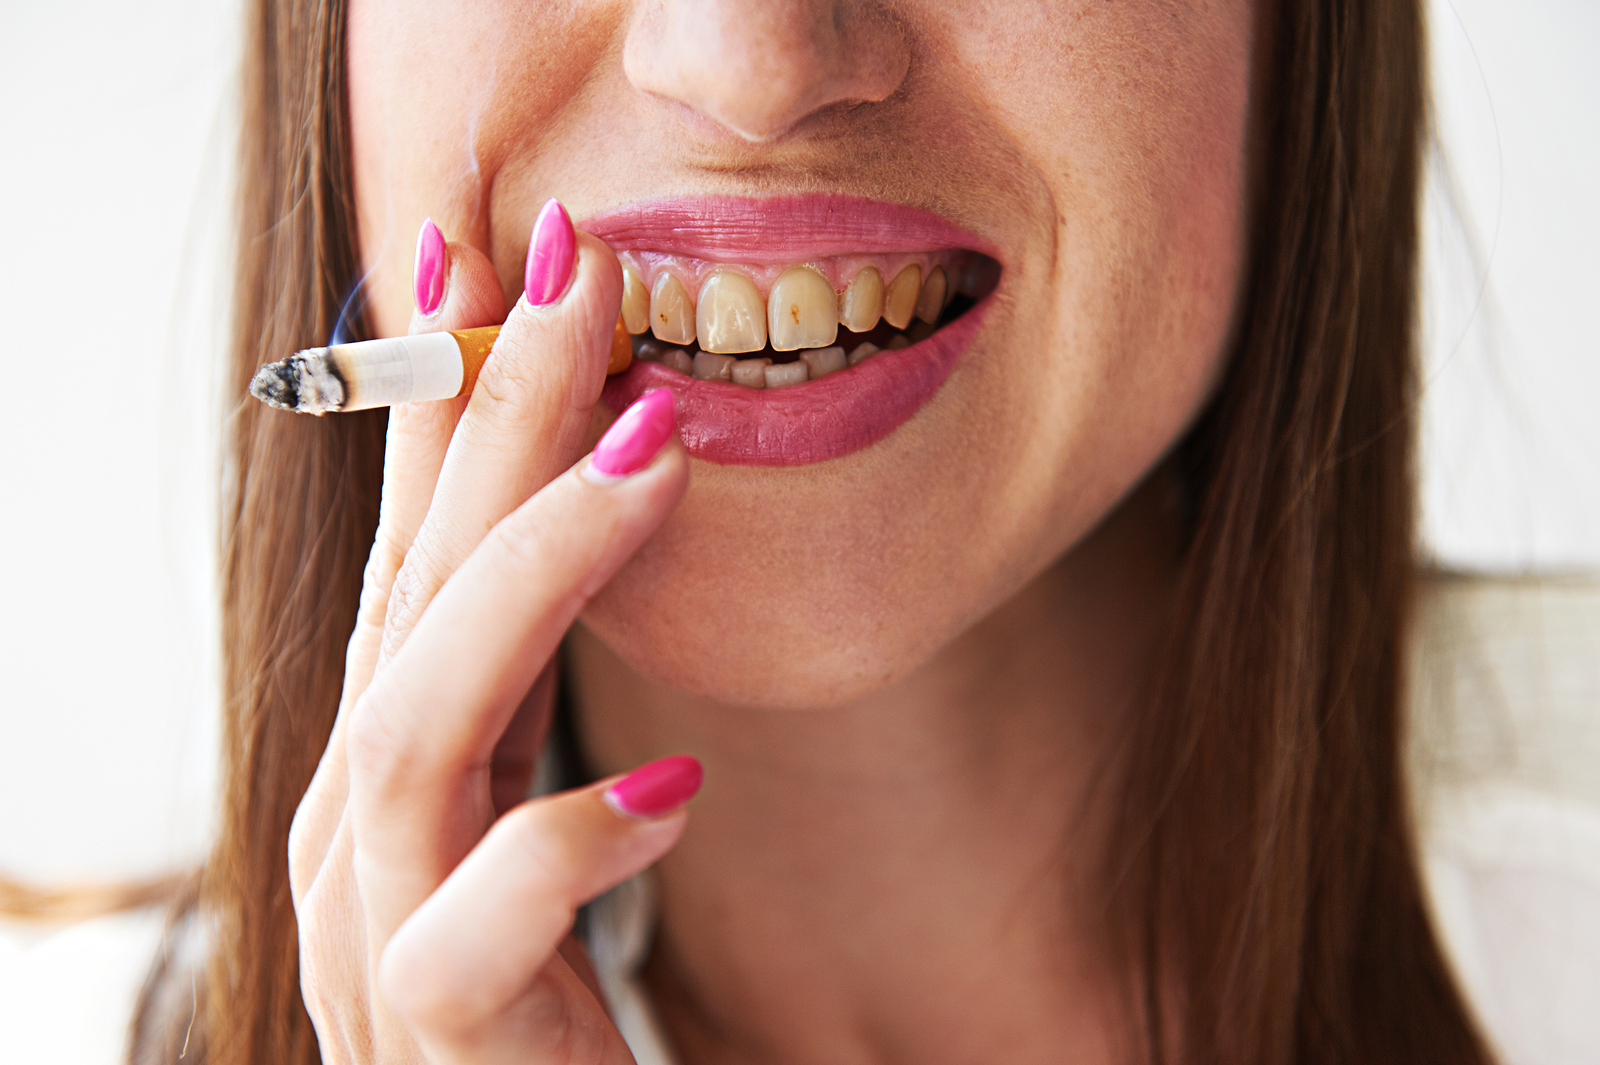 A Philadelphia Cosmetic Dentist Can Whiten Teeth with Nicotine Stains